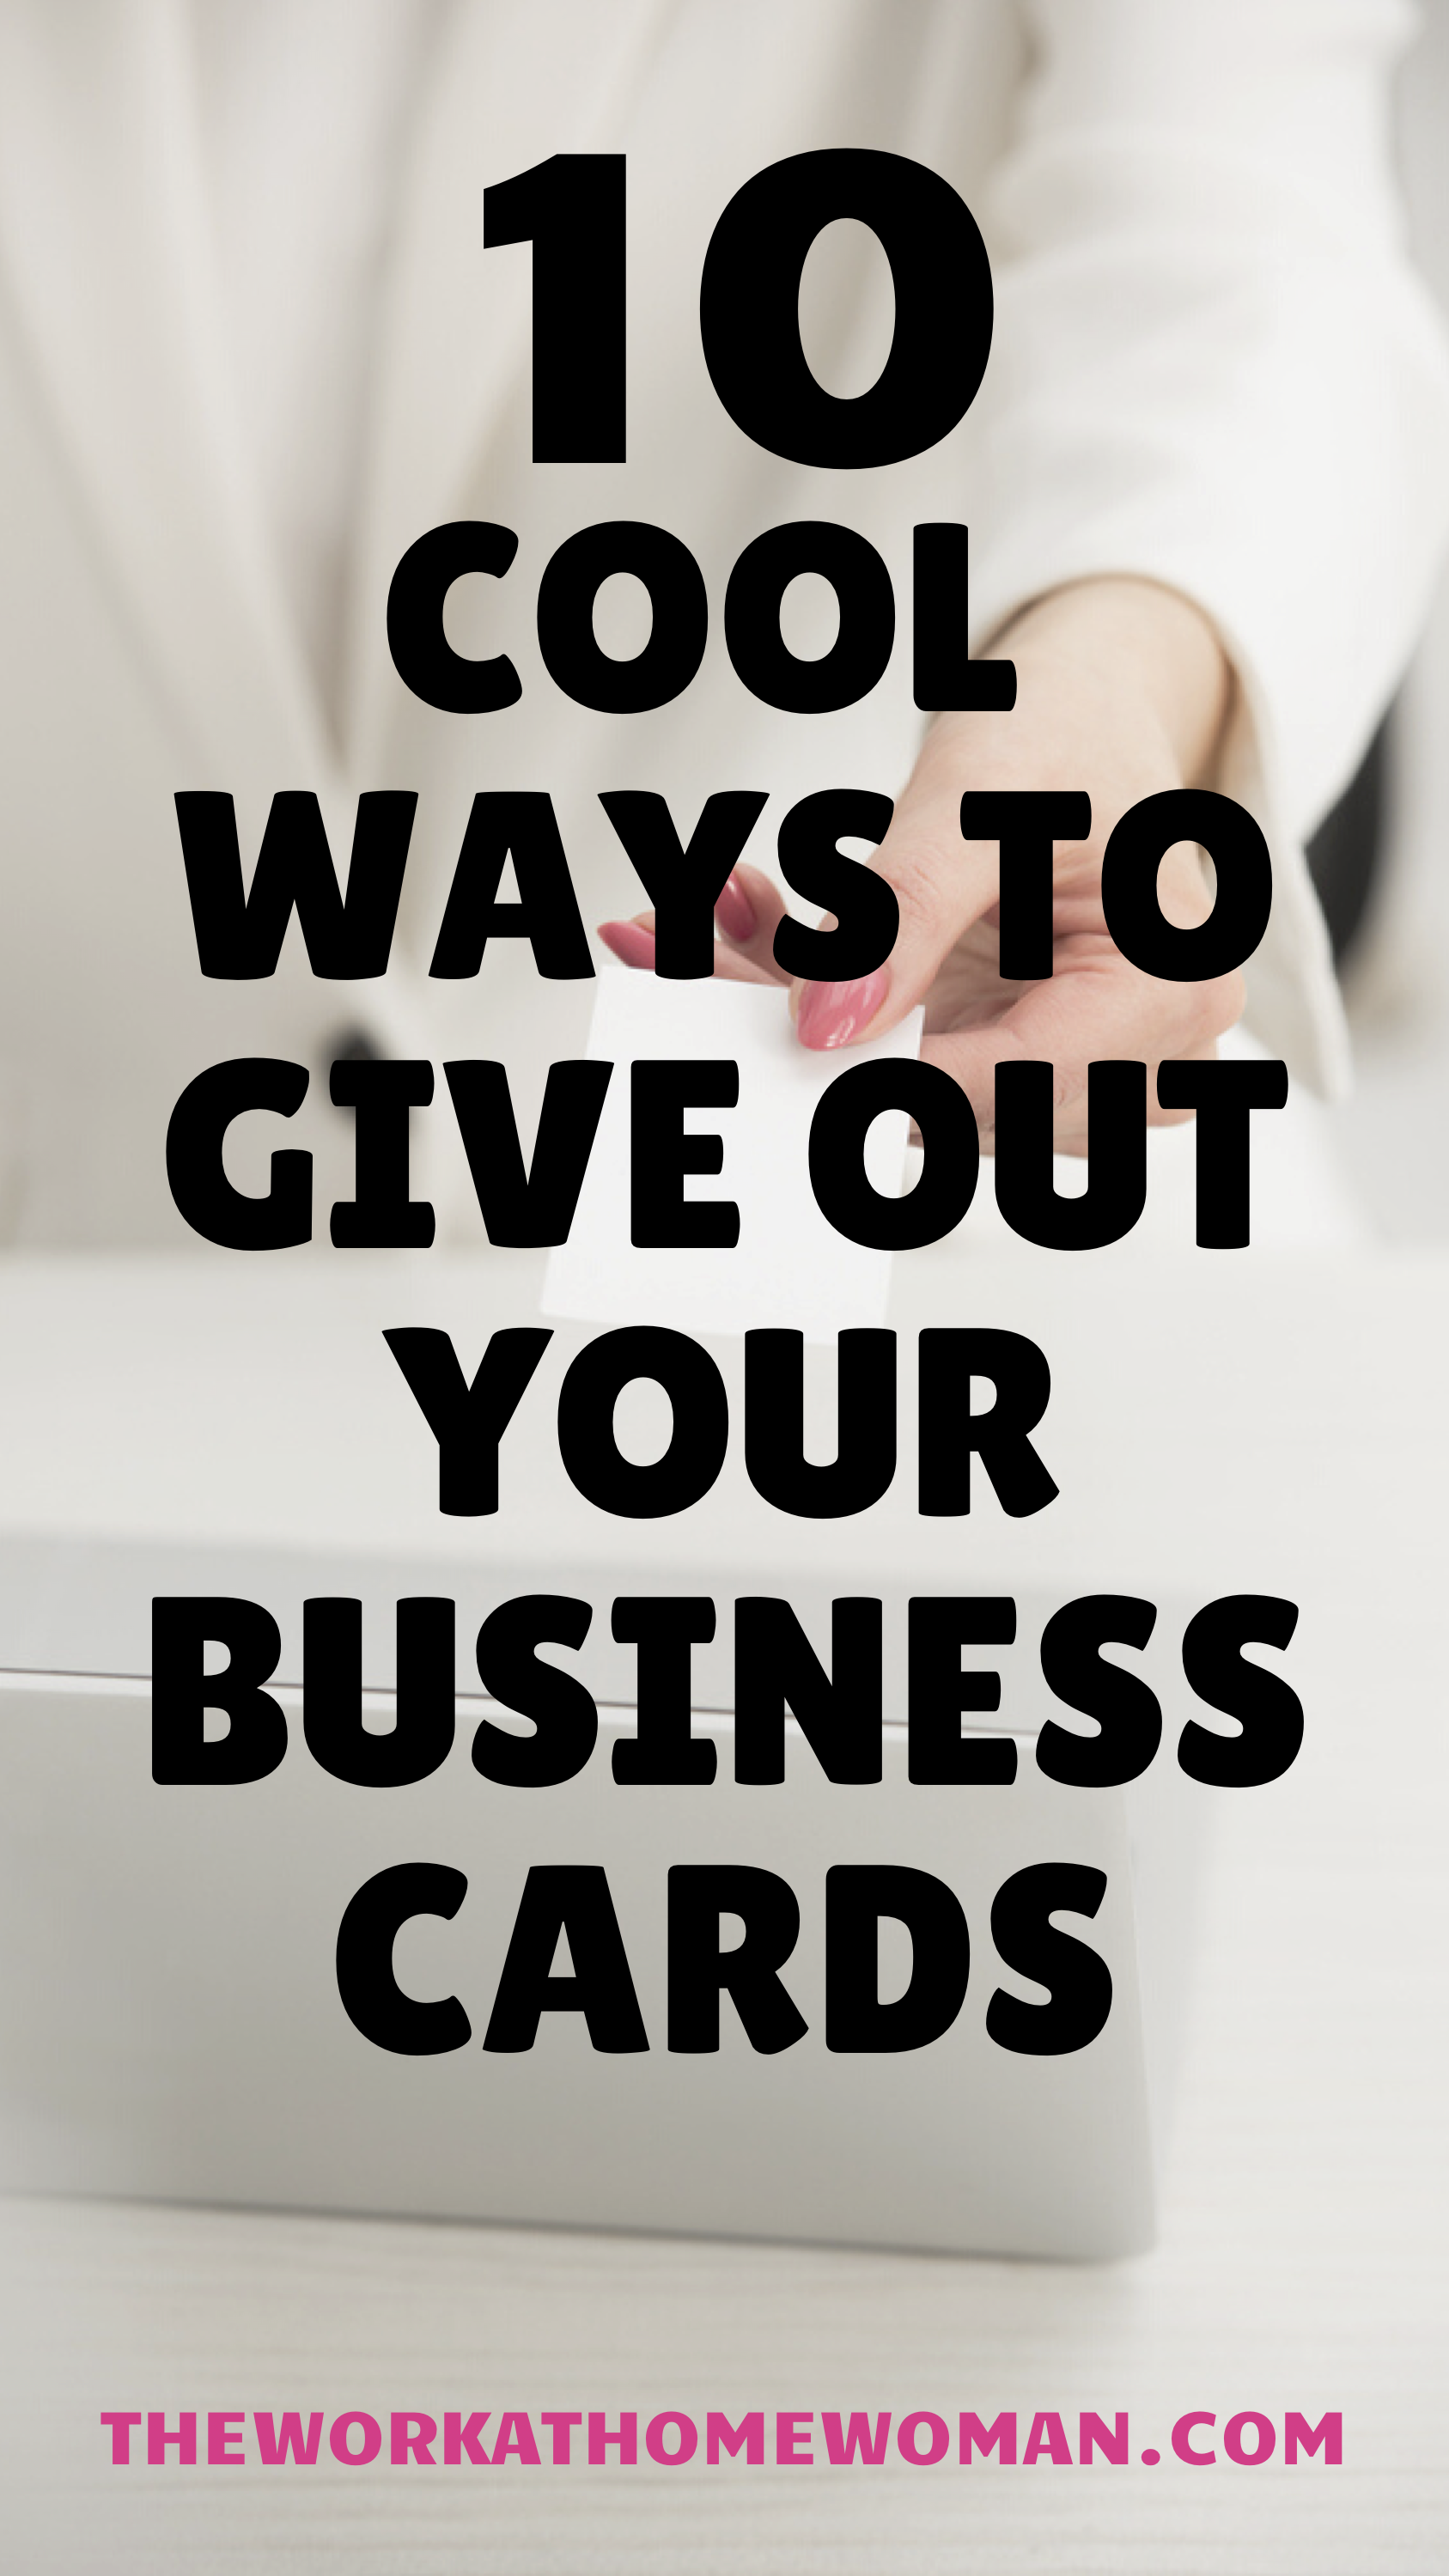 10 Cool Ways To Give Out Your Business Cards Marketing Business Card Small Business Cards Unique Business Ideas